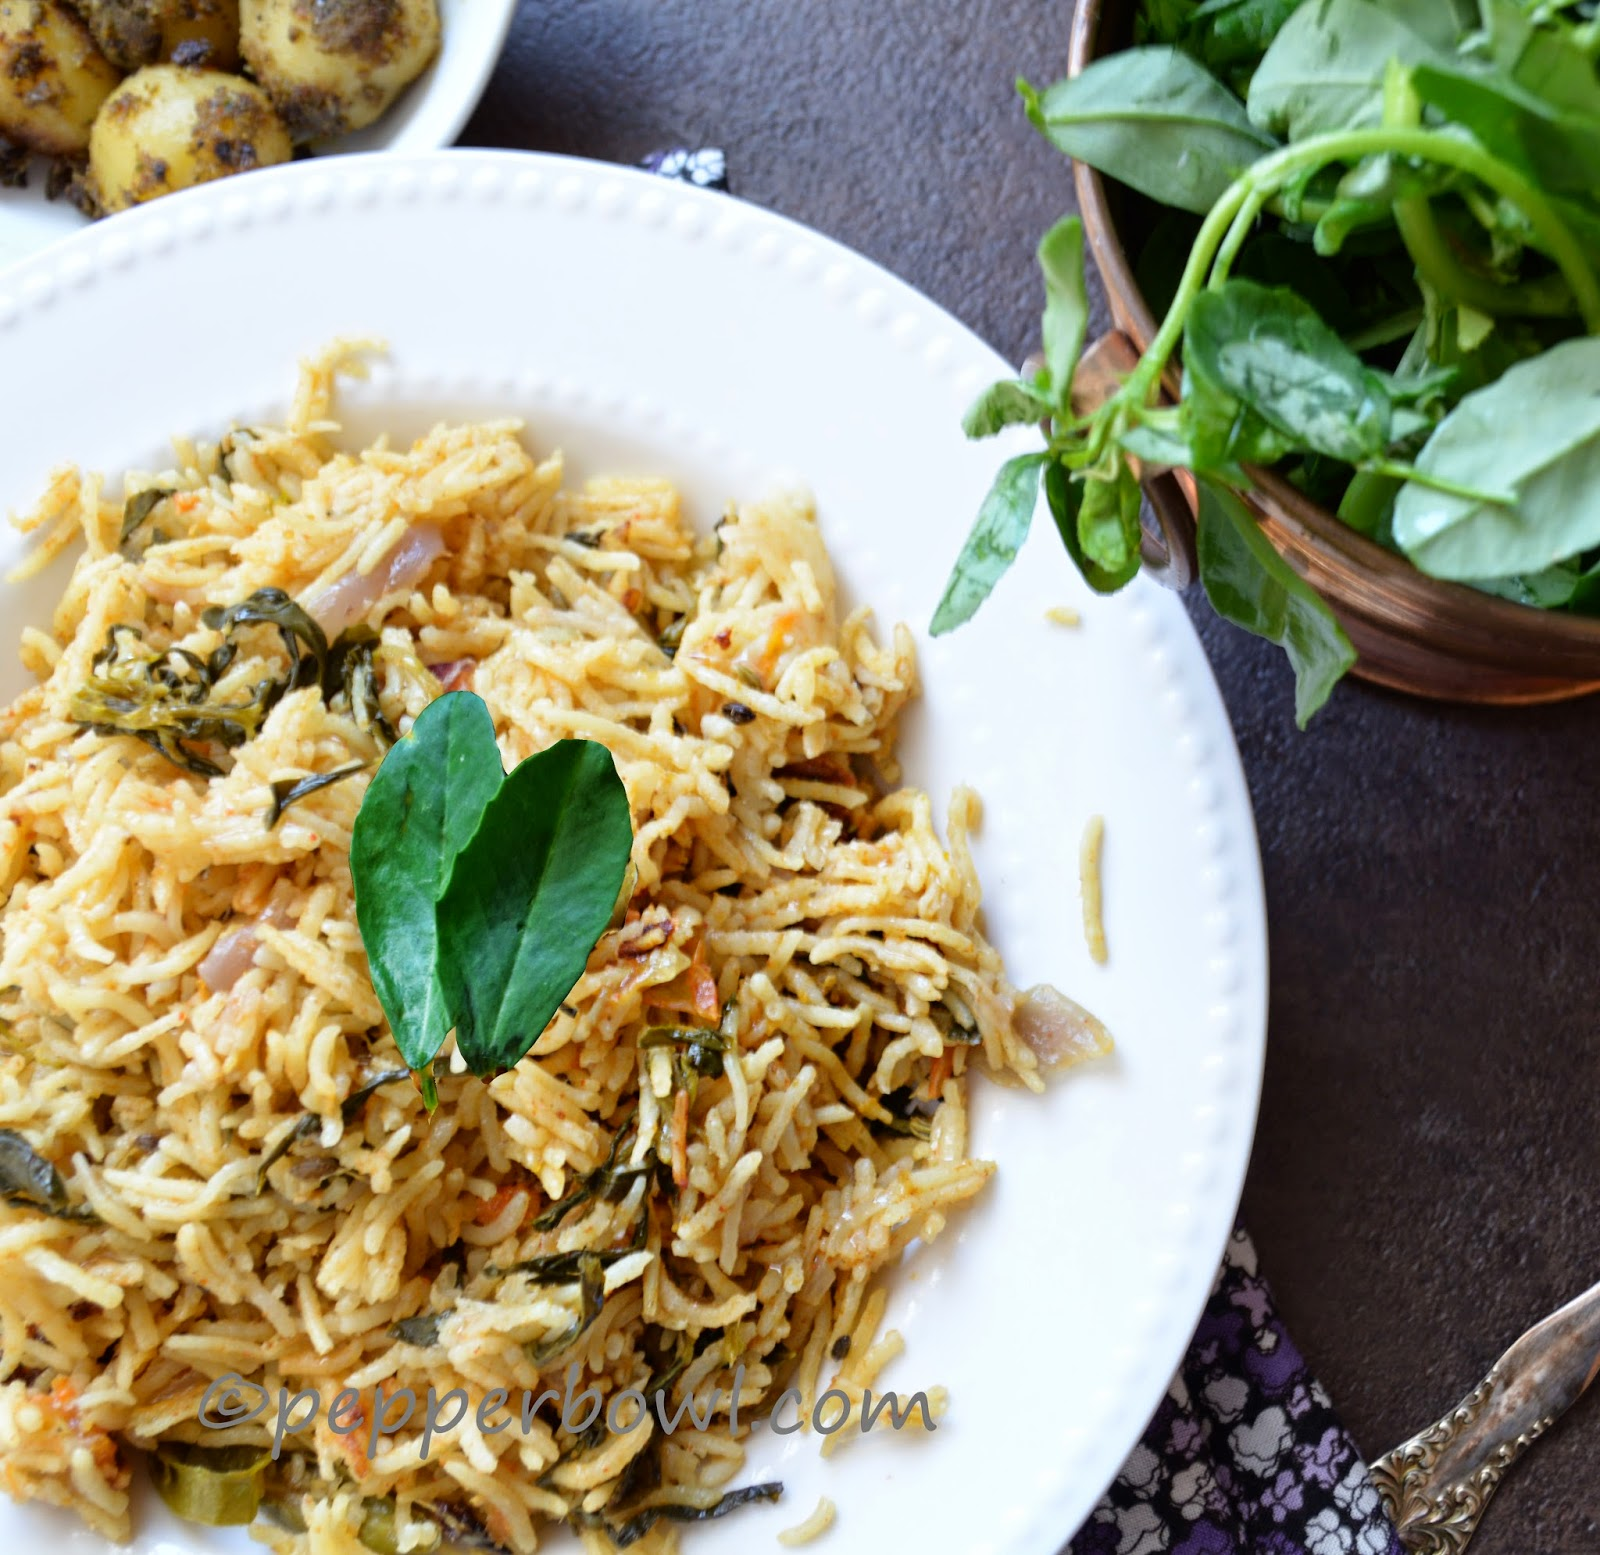 Methi Biryani / Fenugreek Leaves Rice Recipe